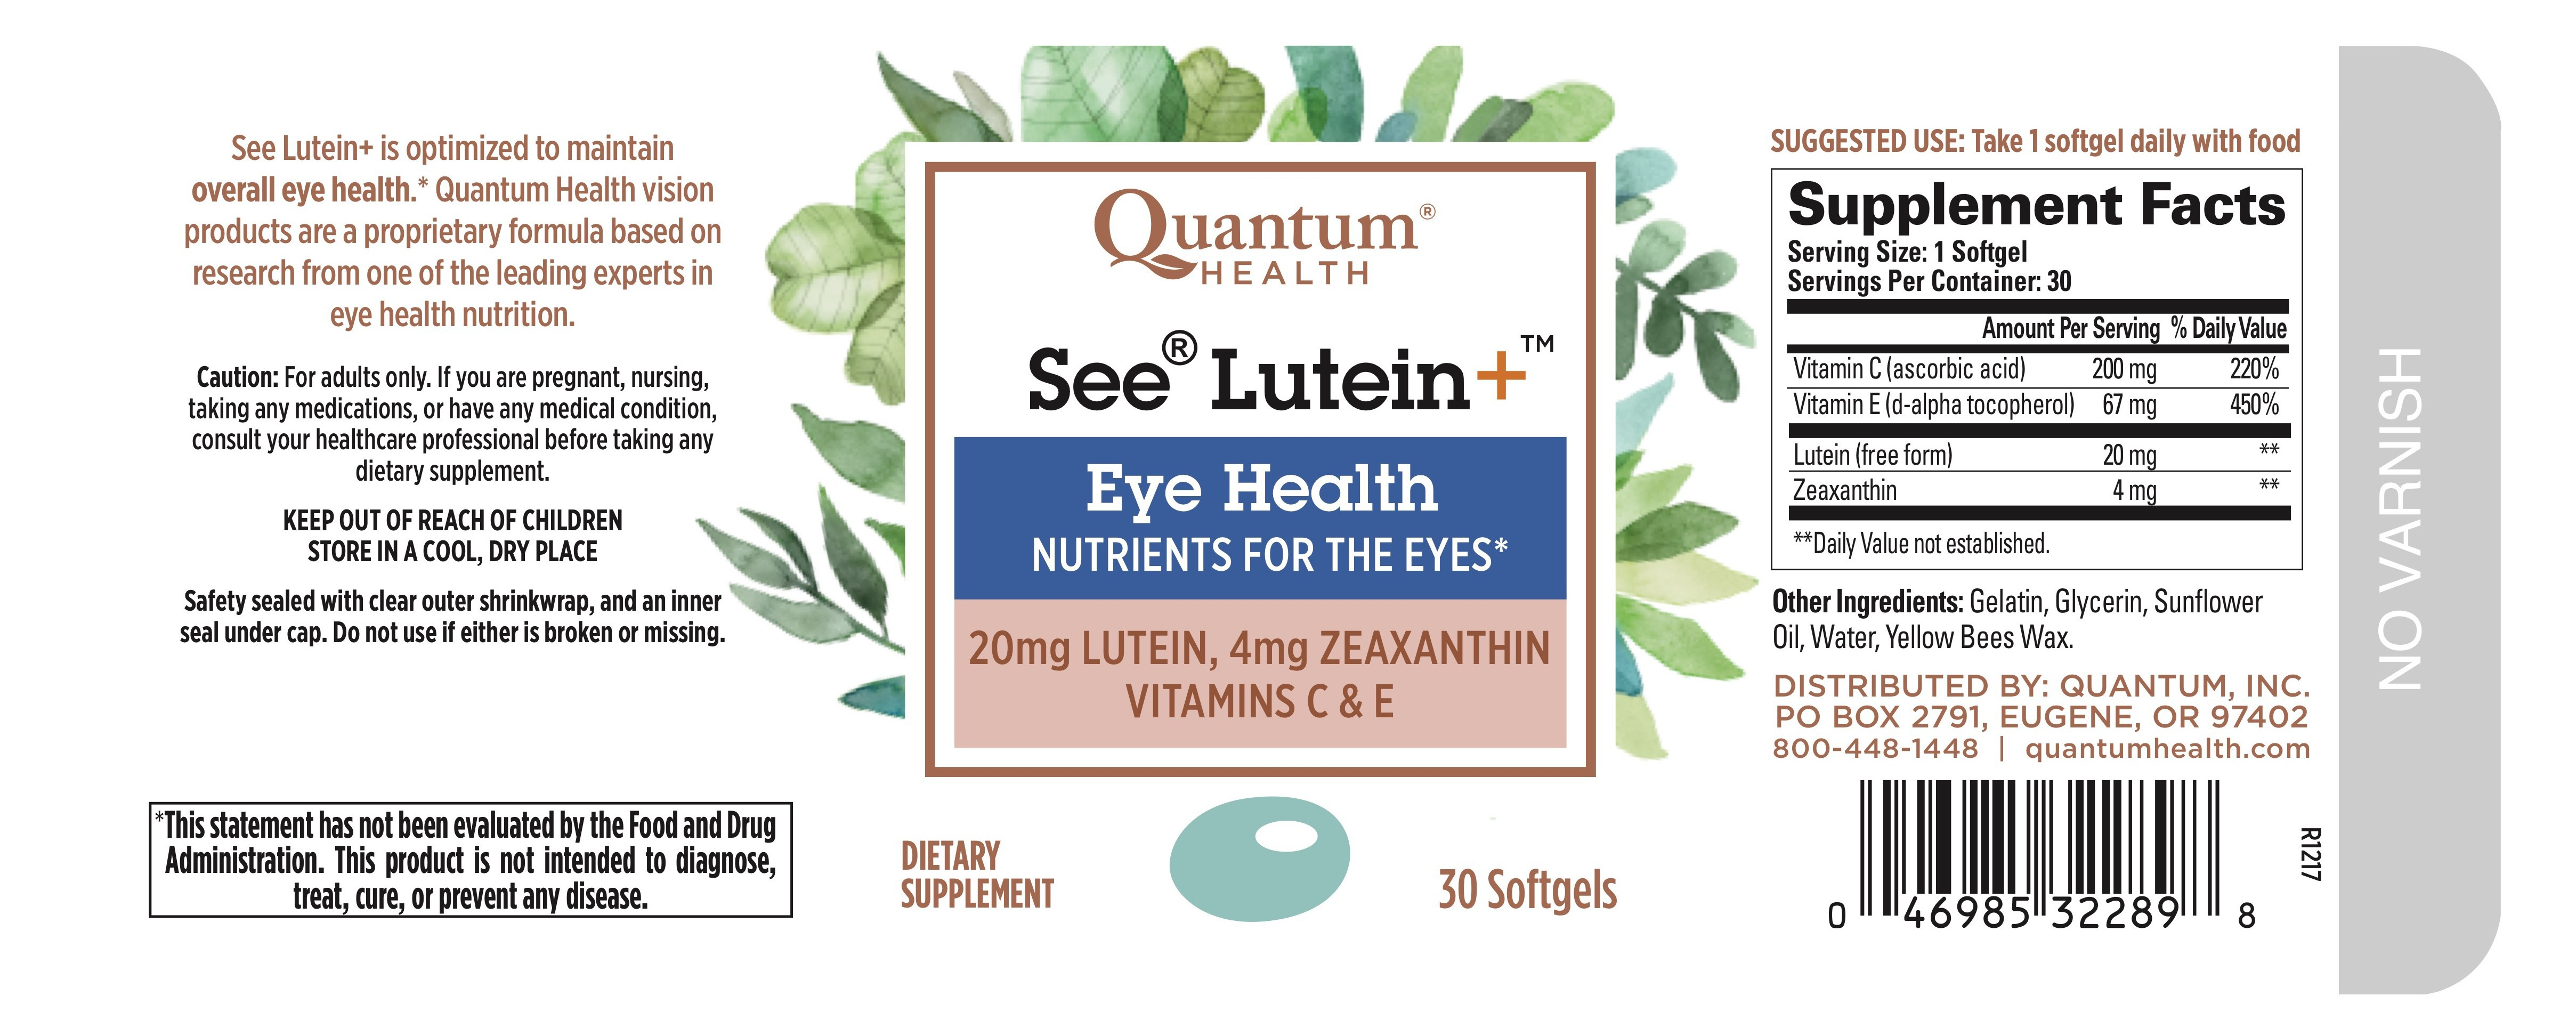 Eye Health Dietary Supplement   The Natural Products Brands Directory